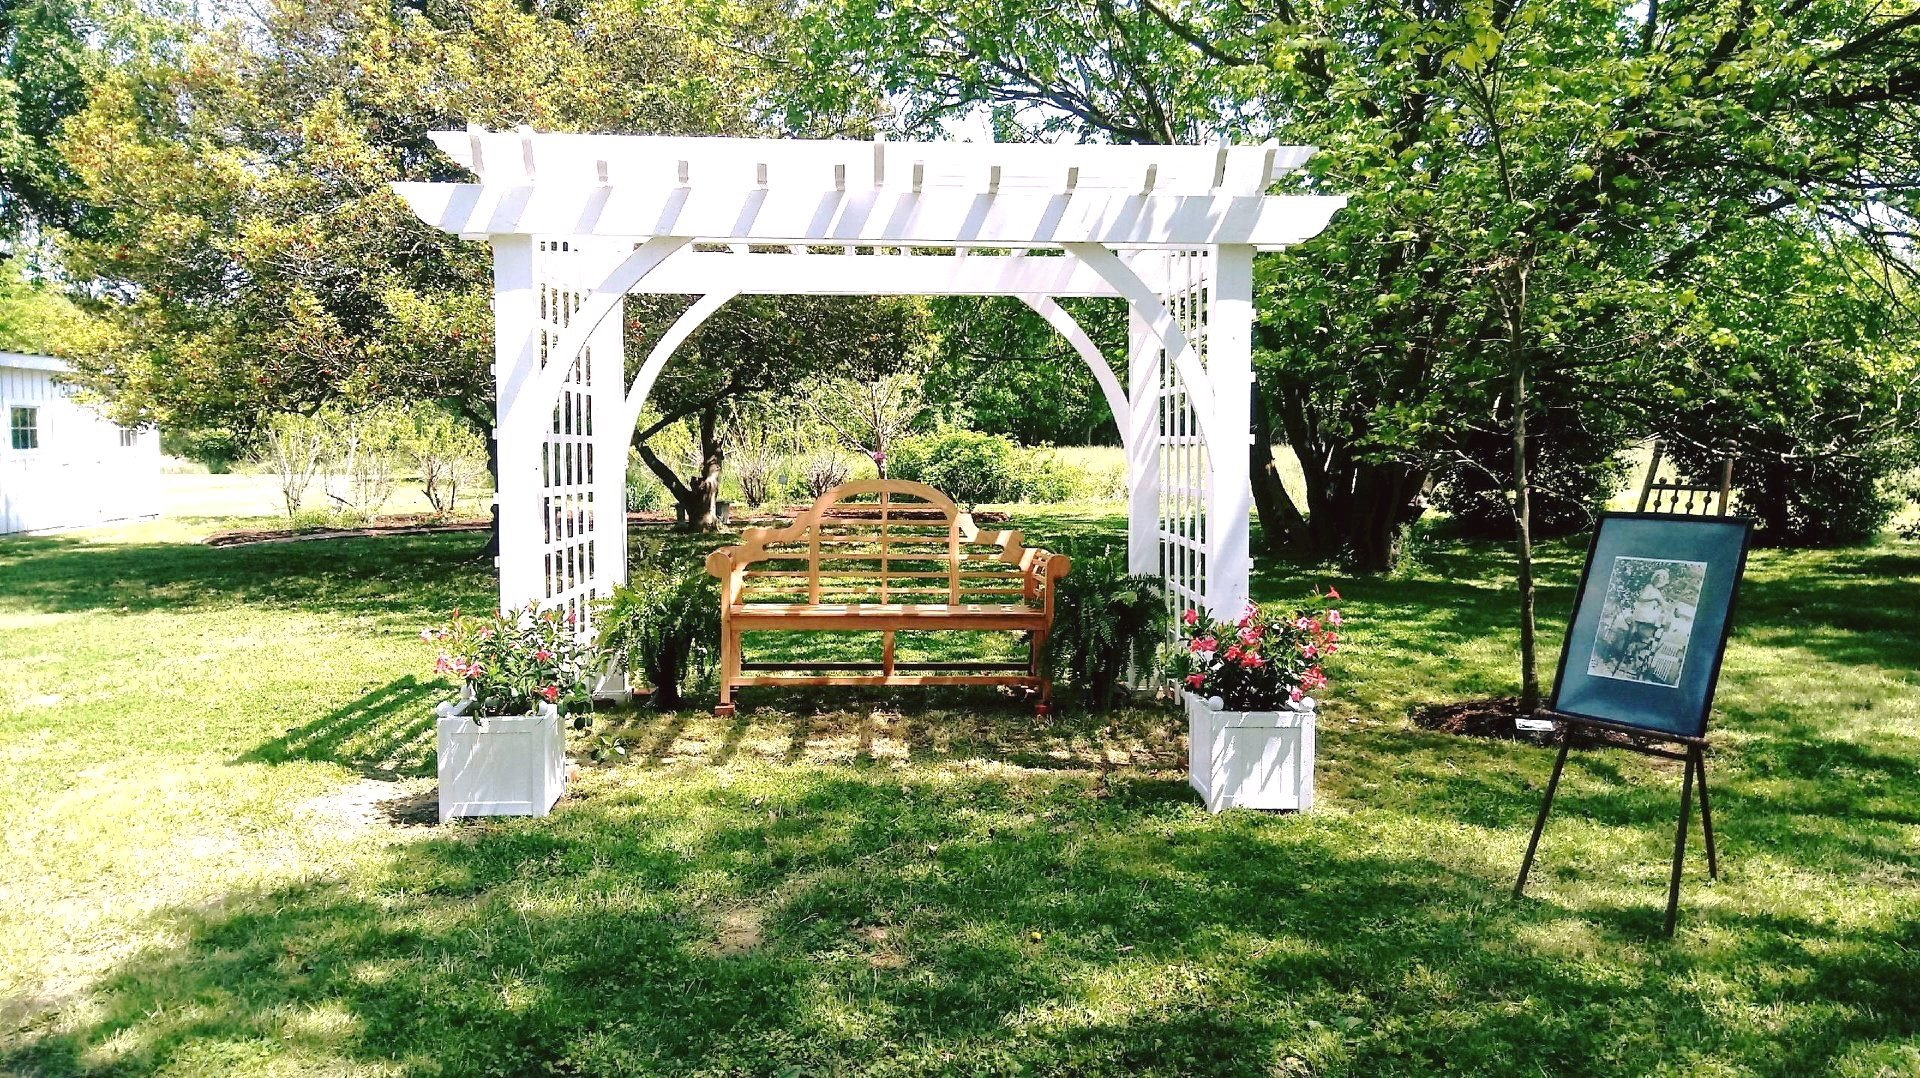 Pergola and bench in the garden.